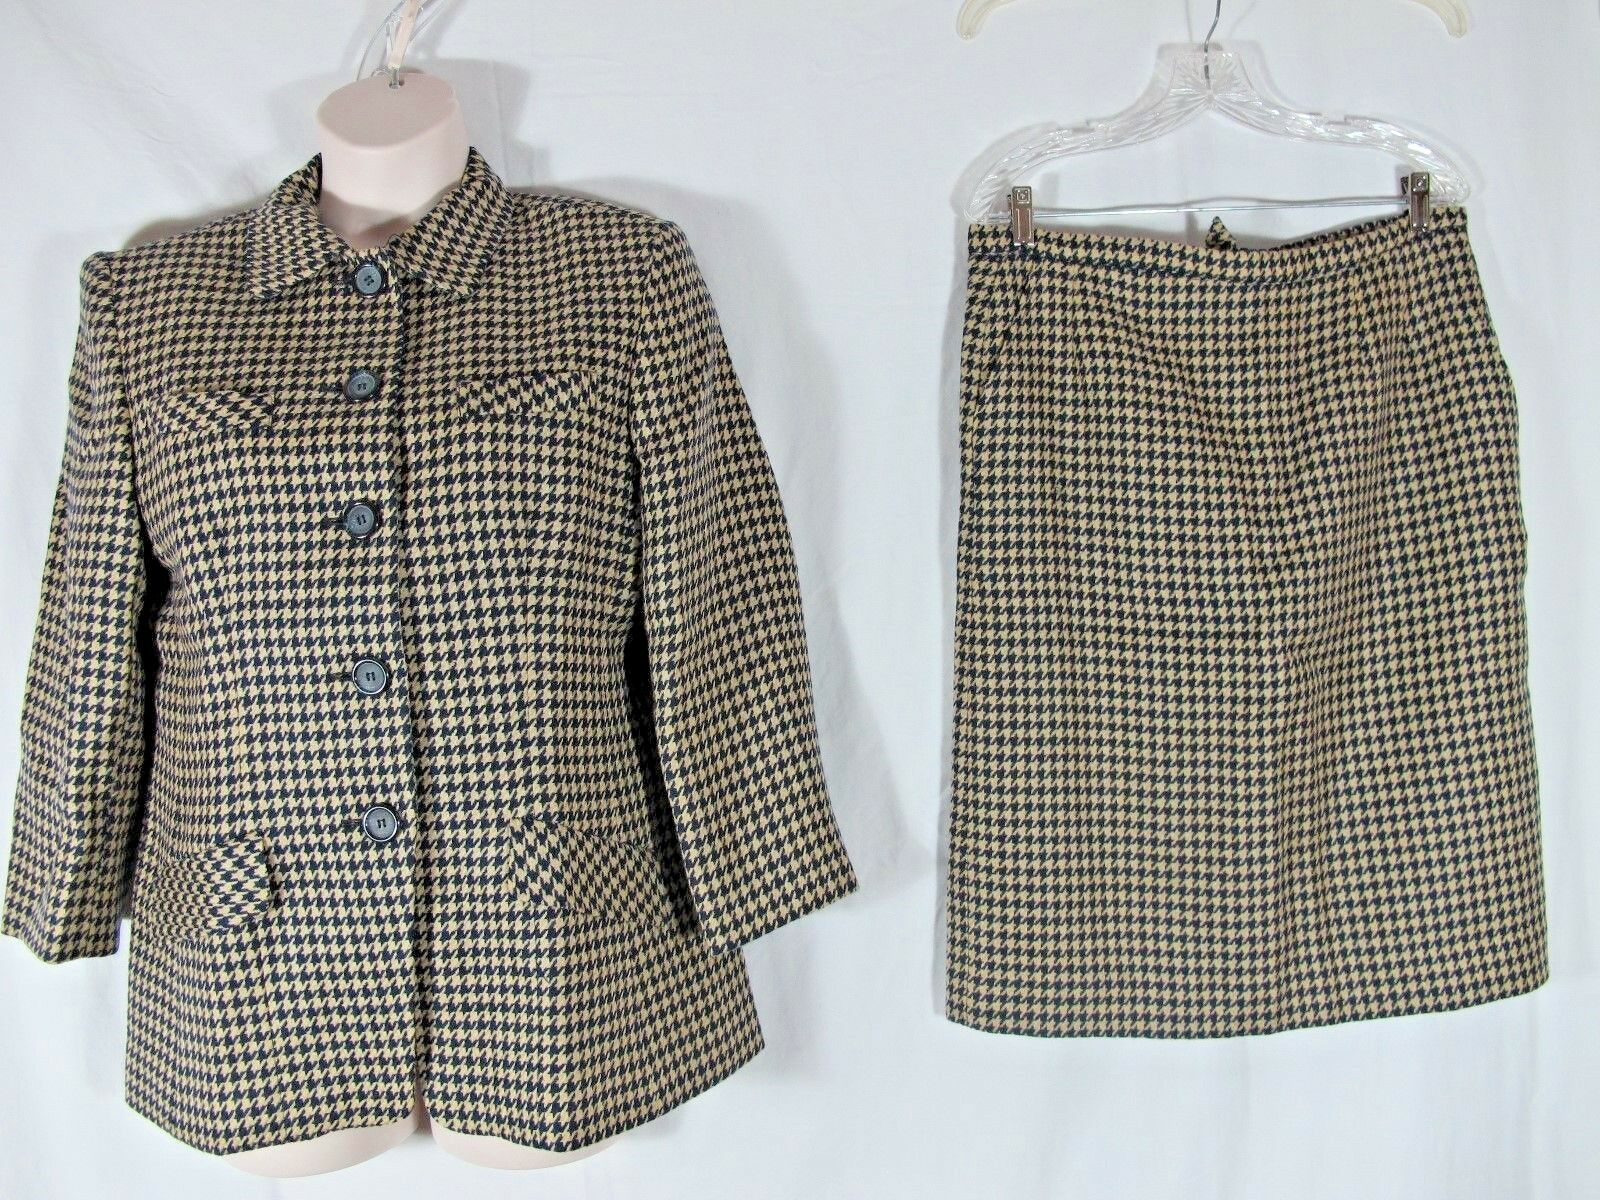 Evan Picone bluee Tan Vintage 50s Houndstooth Skirt Suit Size 14